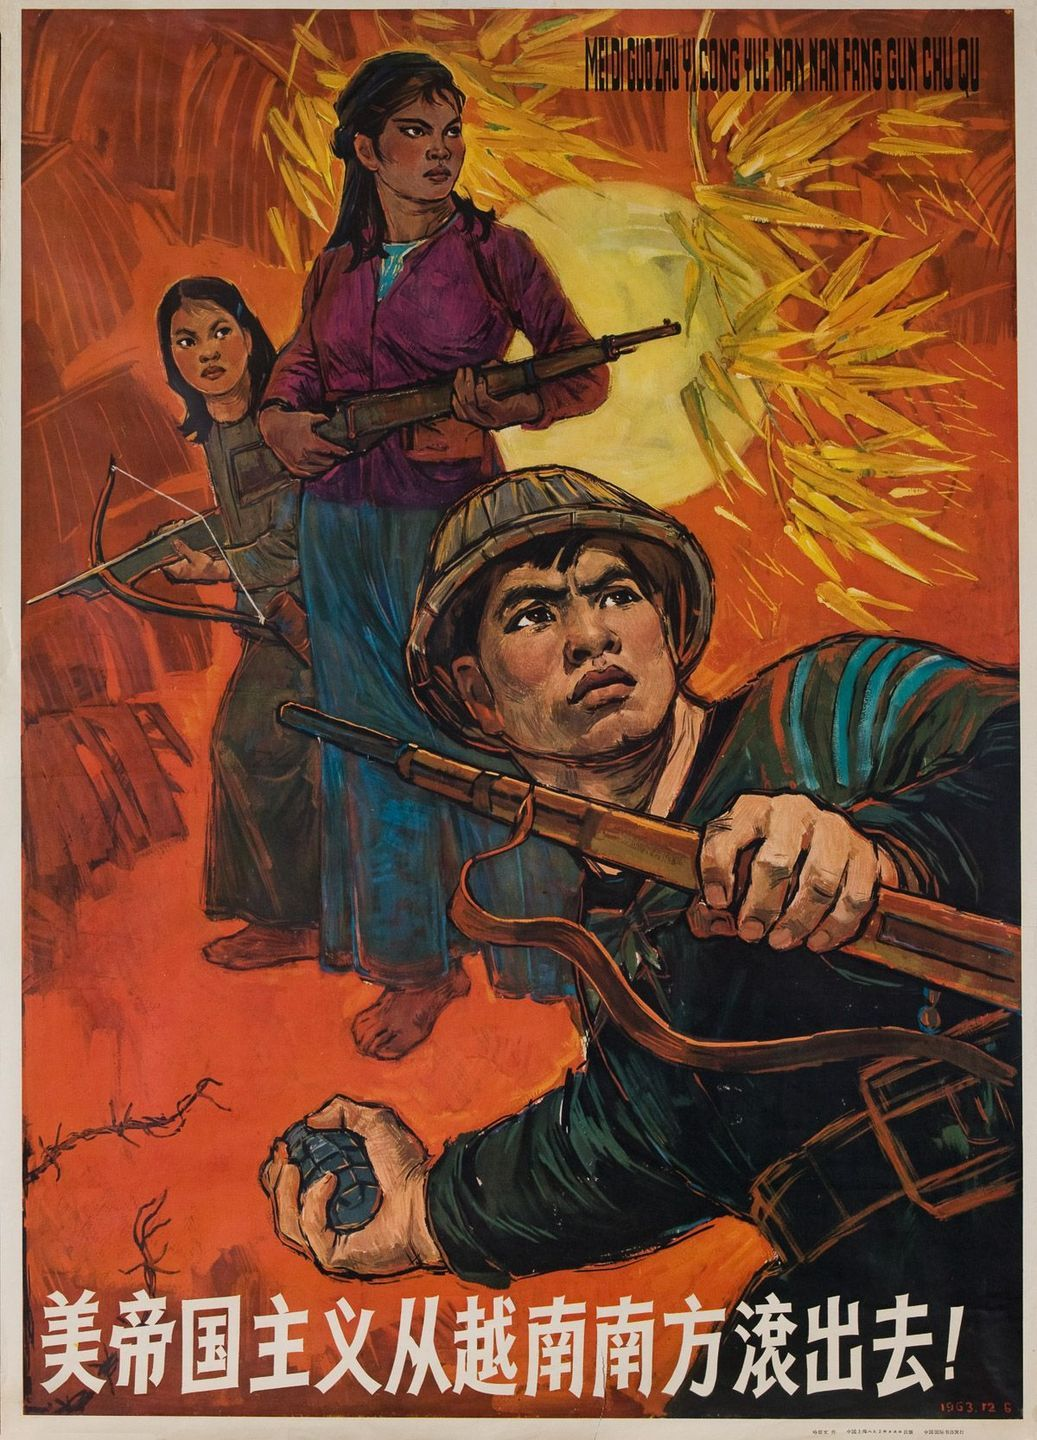 vietnam war propaganda Answer: b one of the reasons that america got involved in the vietnam war was  to prevent the north korean communist government from.